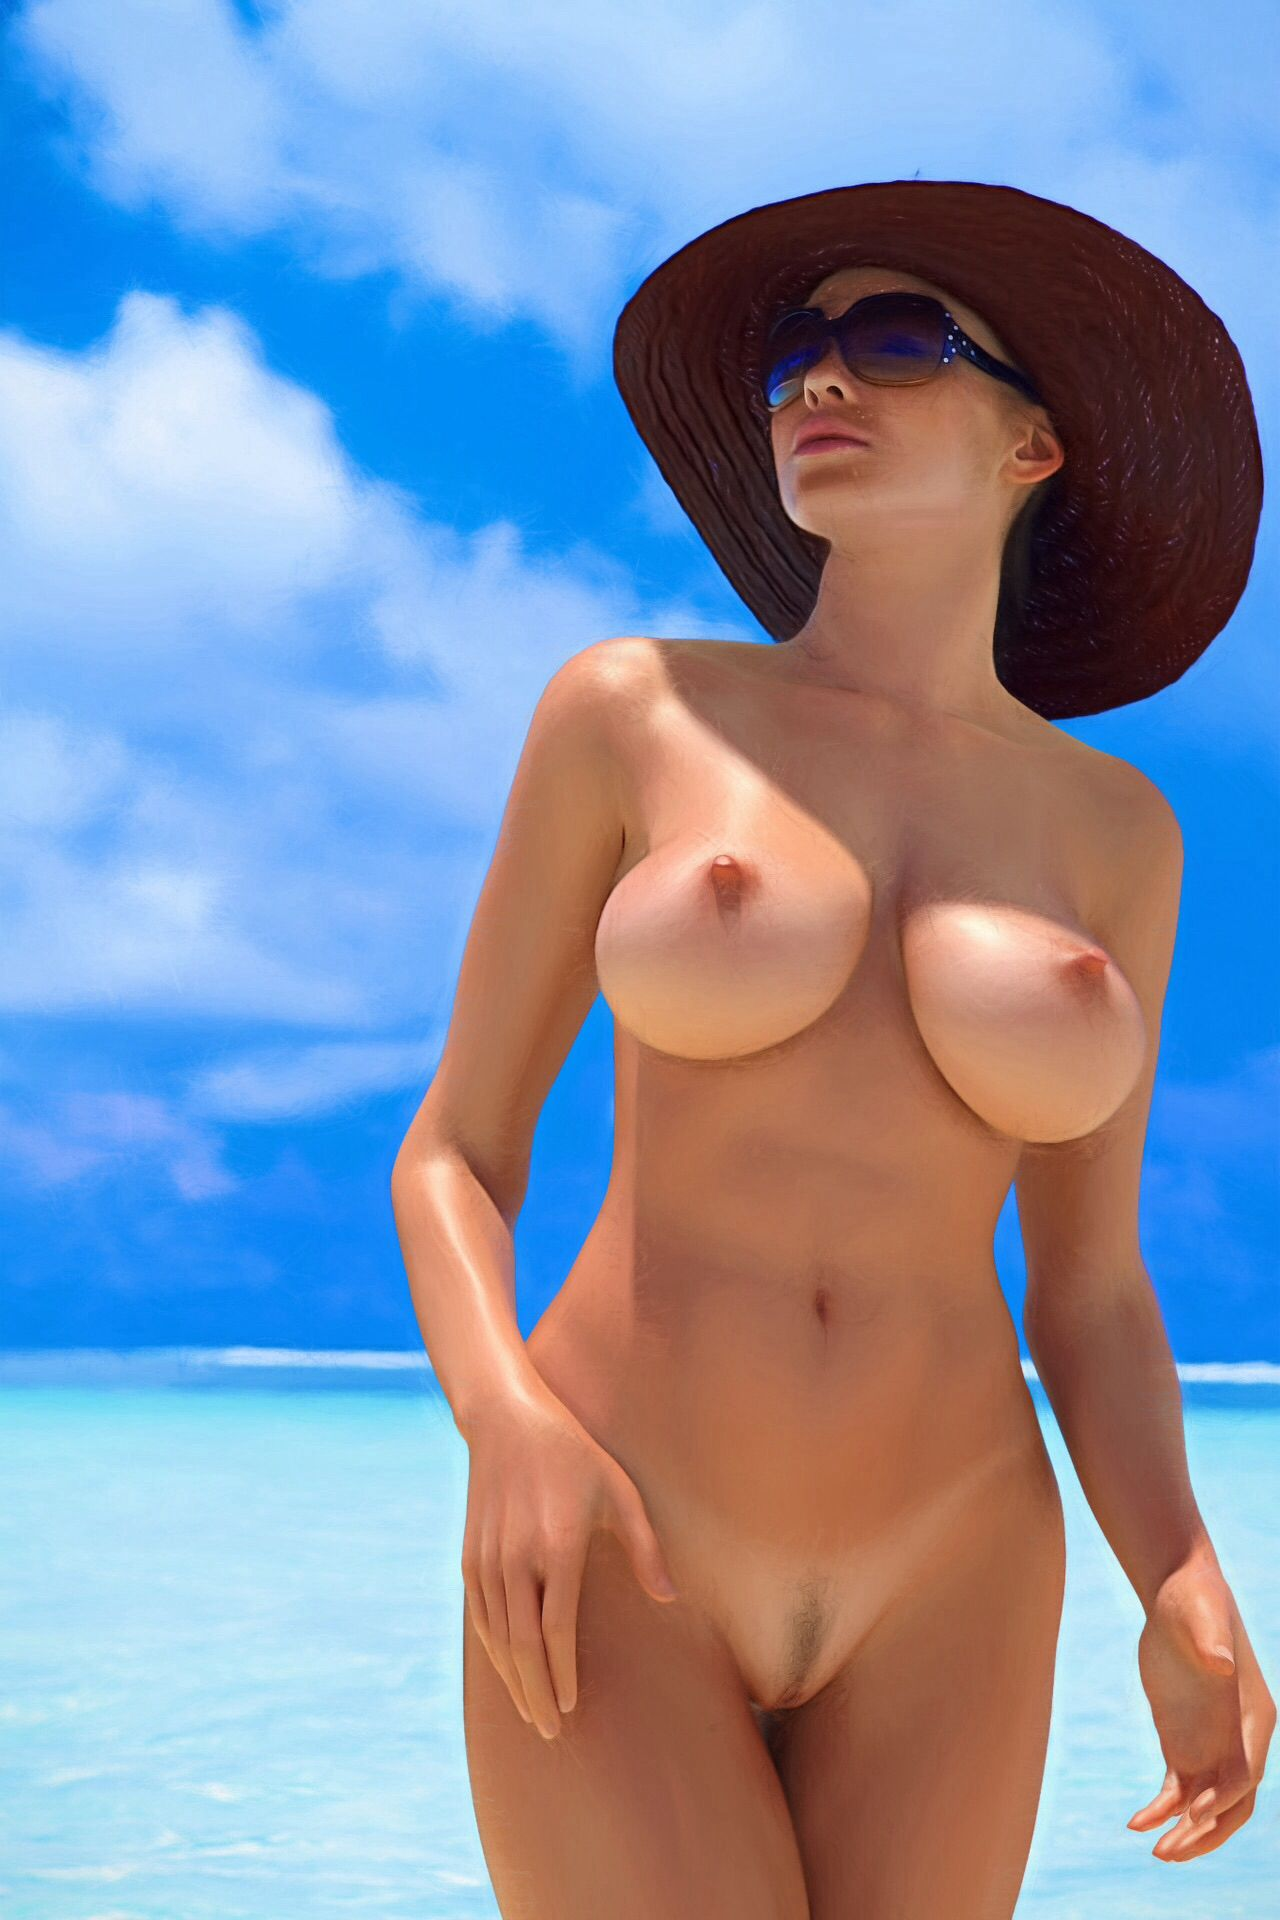 Sexy older women nude at beach, nawtyneighbor naked